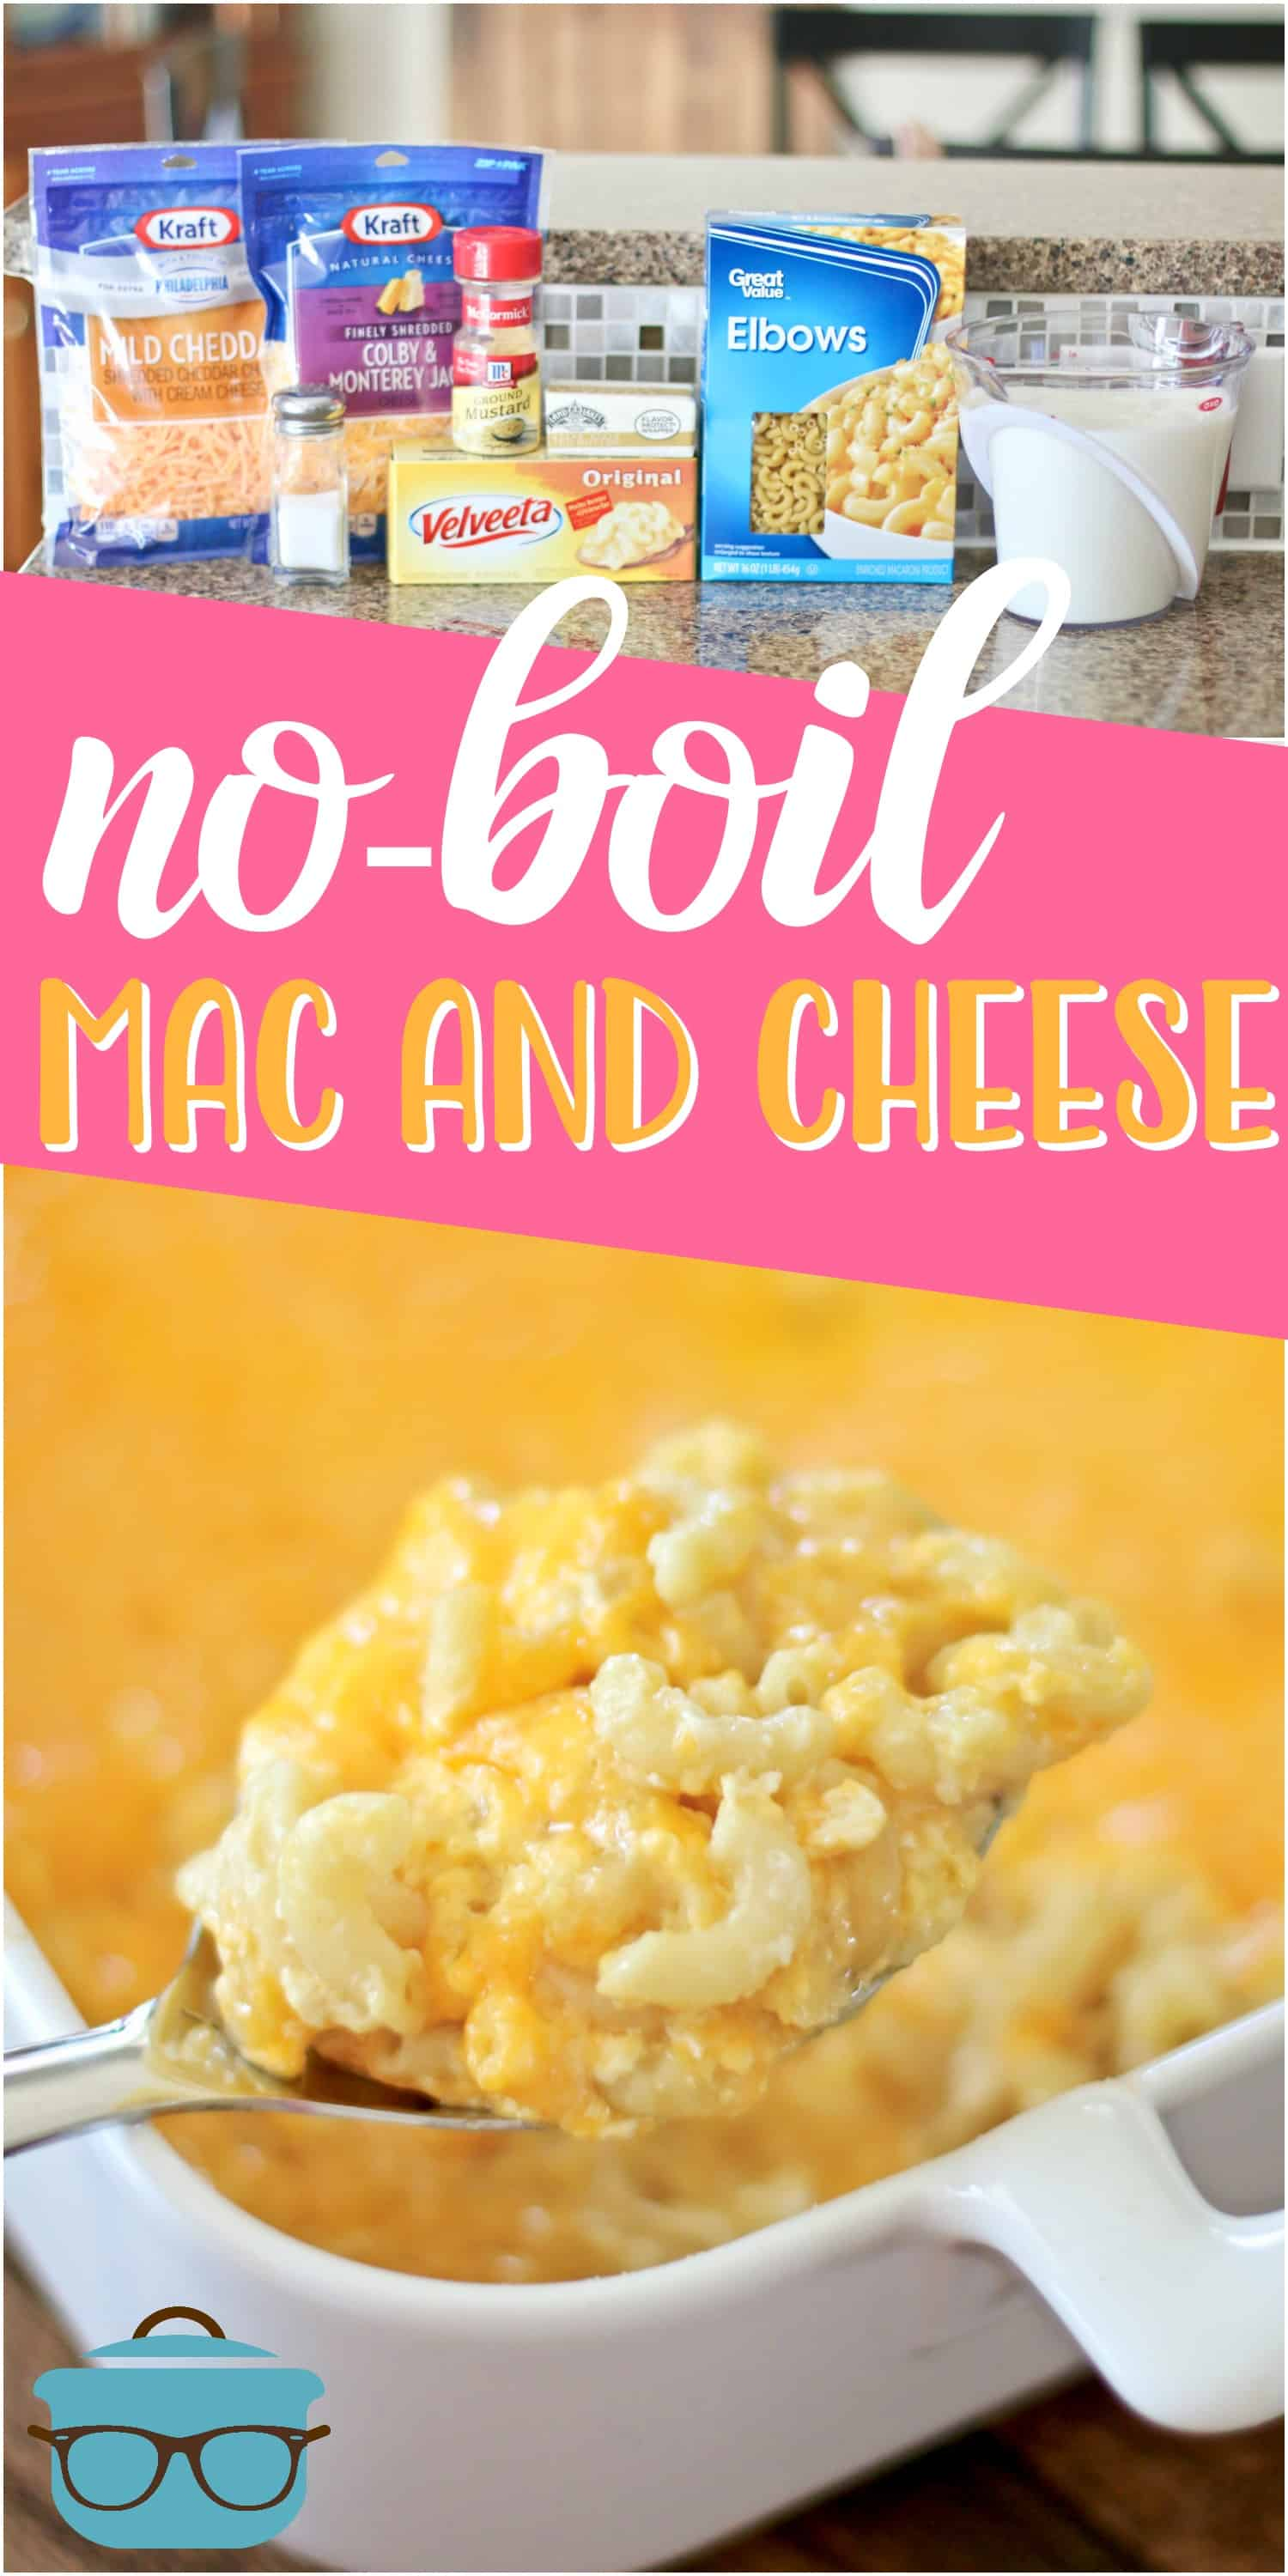 No-Boil Homemade Macaroni and Cheese! The easiest, creamiest homemade macaroni and cheese ever. No boiling the noodles first! #macaroniandcheese #ovenbaked